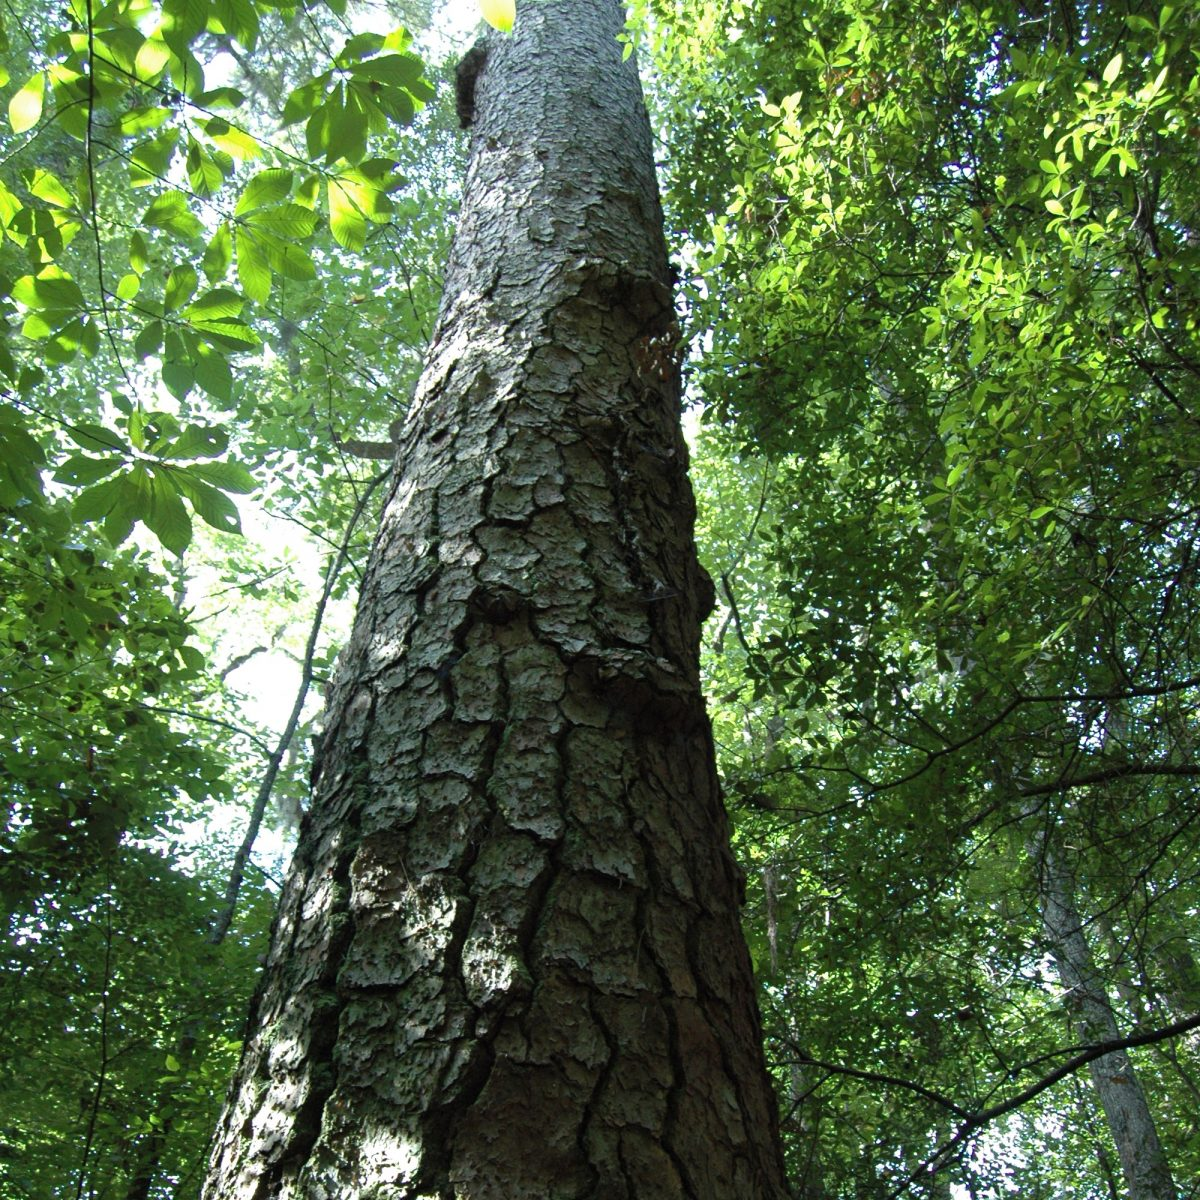 Loblolly Pine in Congaree National Park